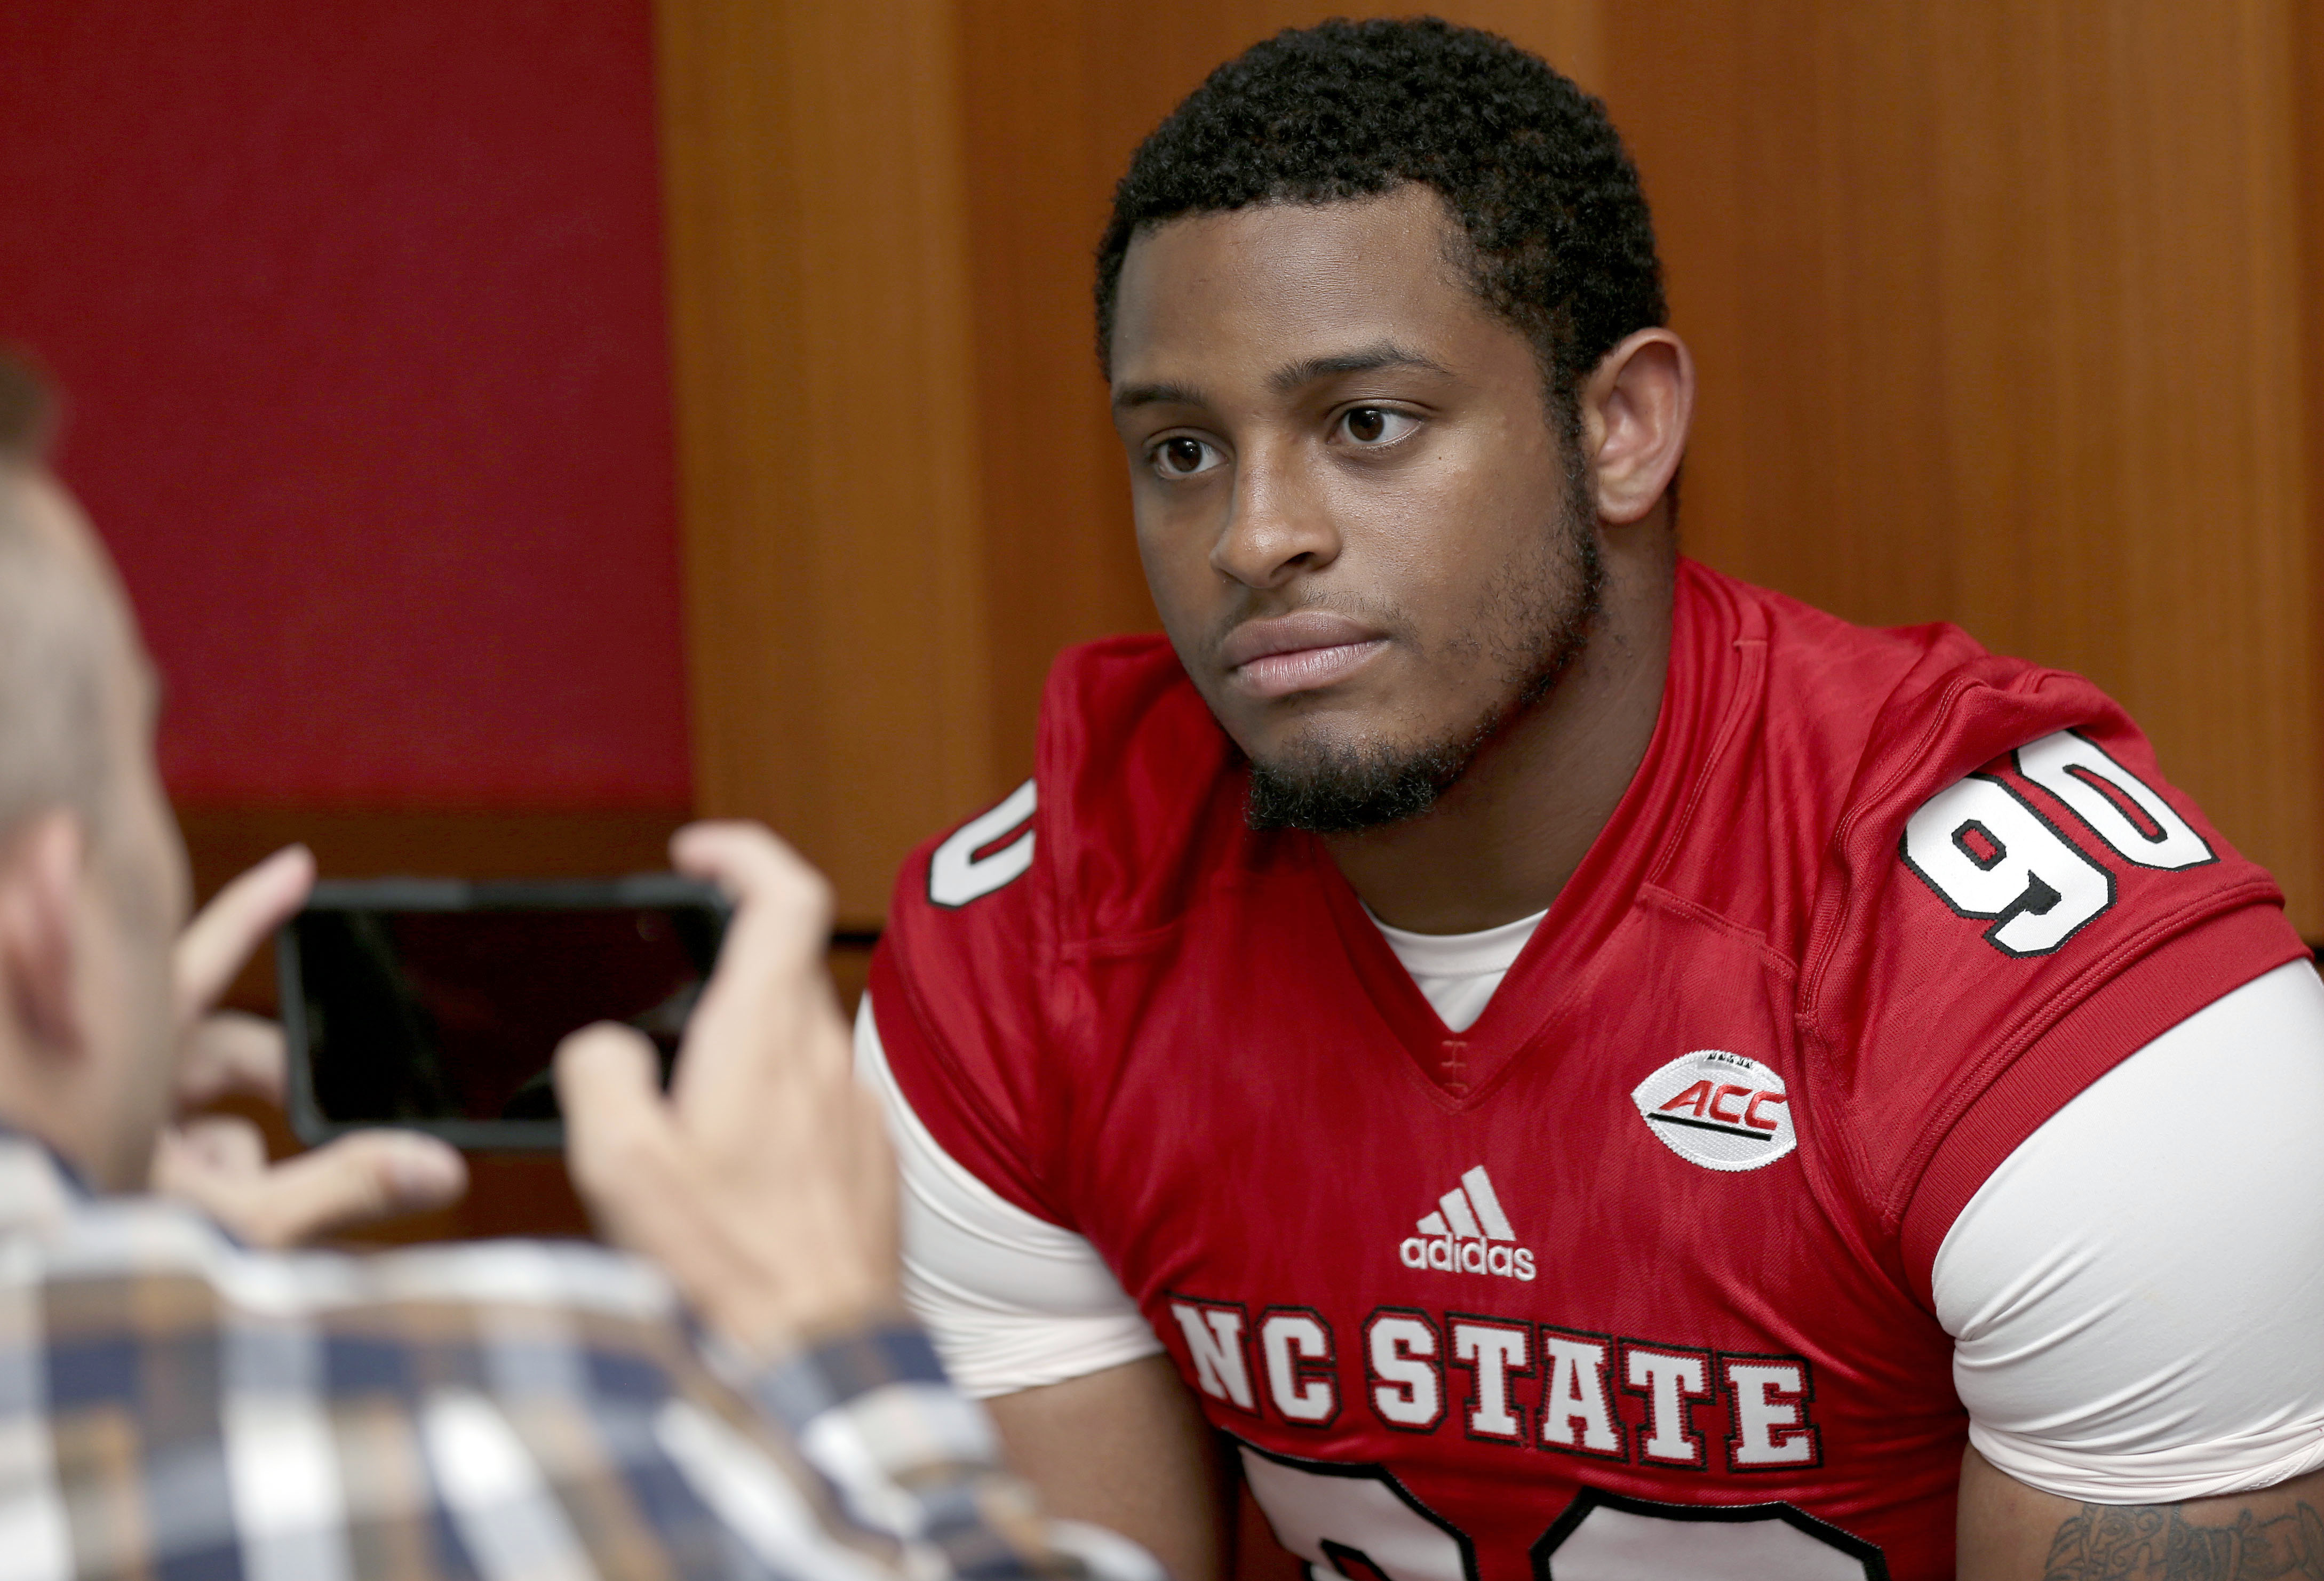 In this photo taken Sunday, Aug. 9, 2015, North Carolina State defensive end Mike Rose (90) speaks with members of the press during the team's NCAA college football media day in Raleigh, N.C. (AP Photo/Gerry Broome)